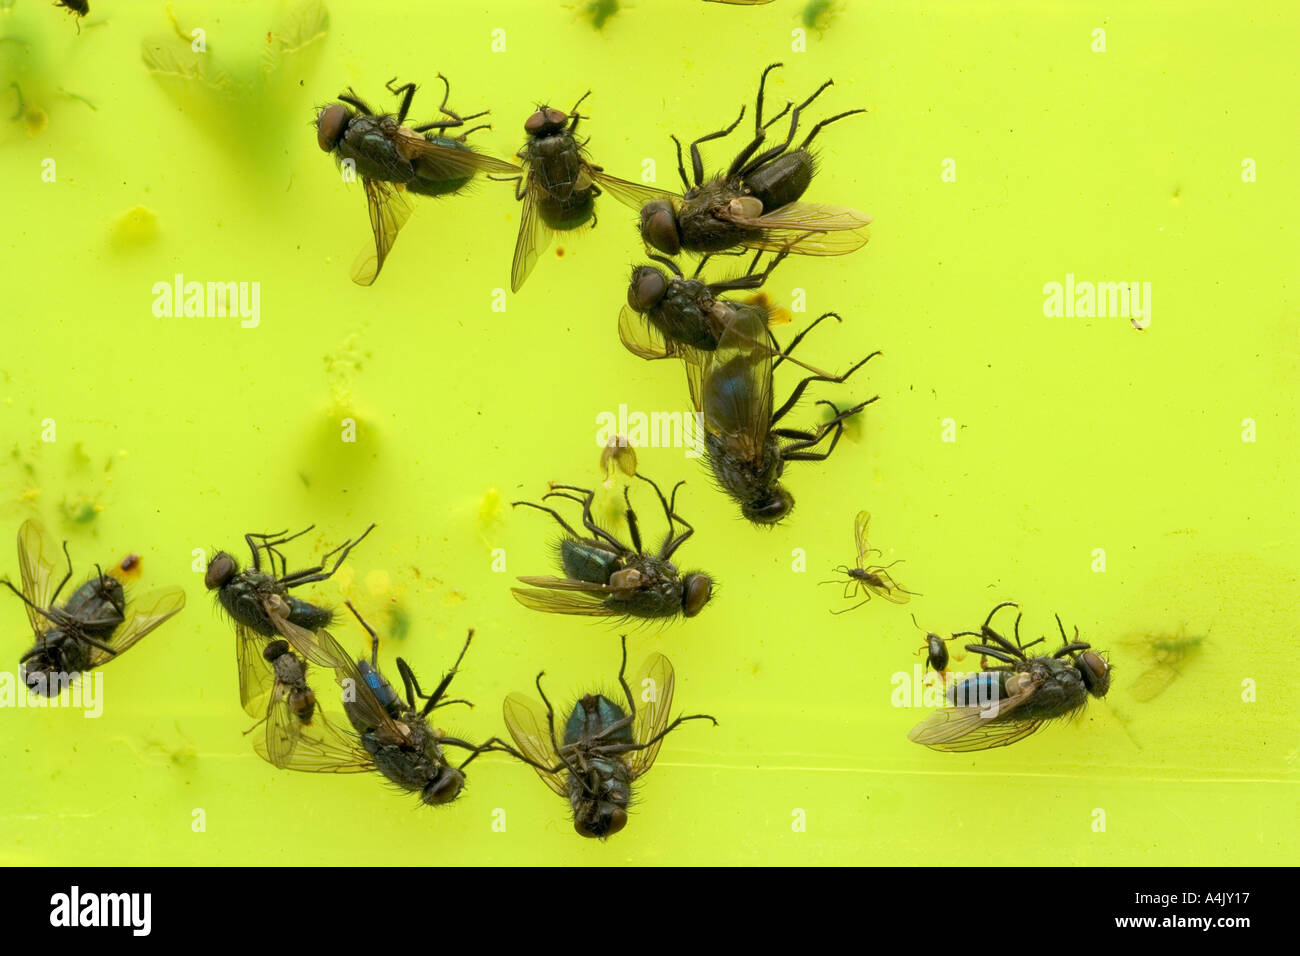 Insect Pests Caught On Sticky Fly Trap Stock Photo